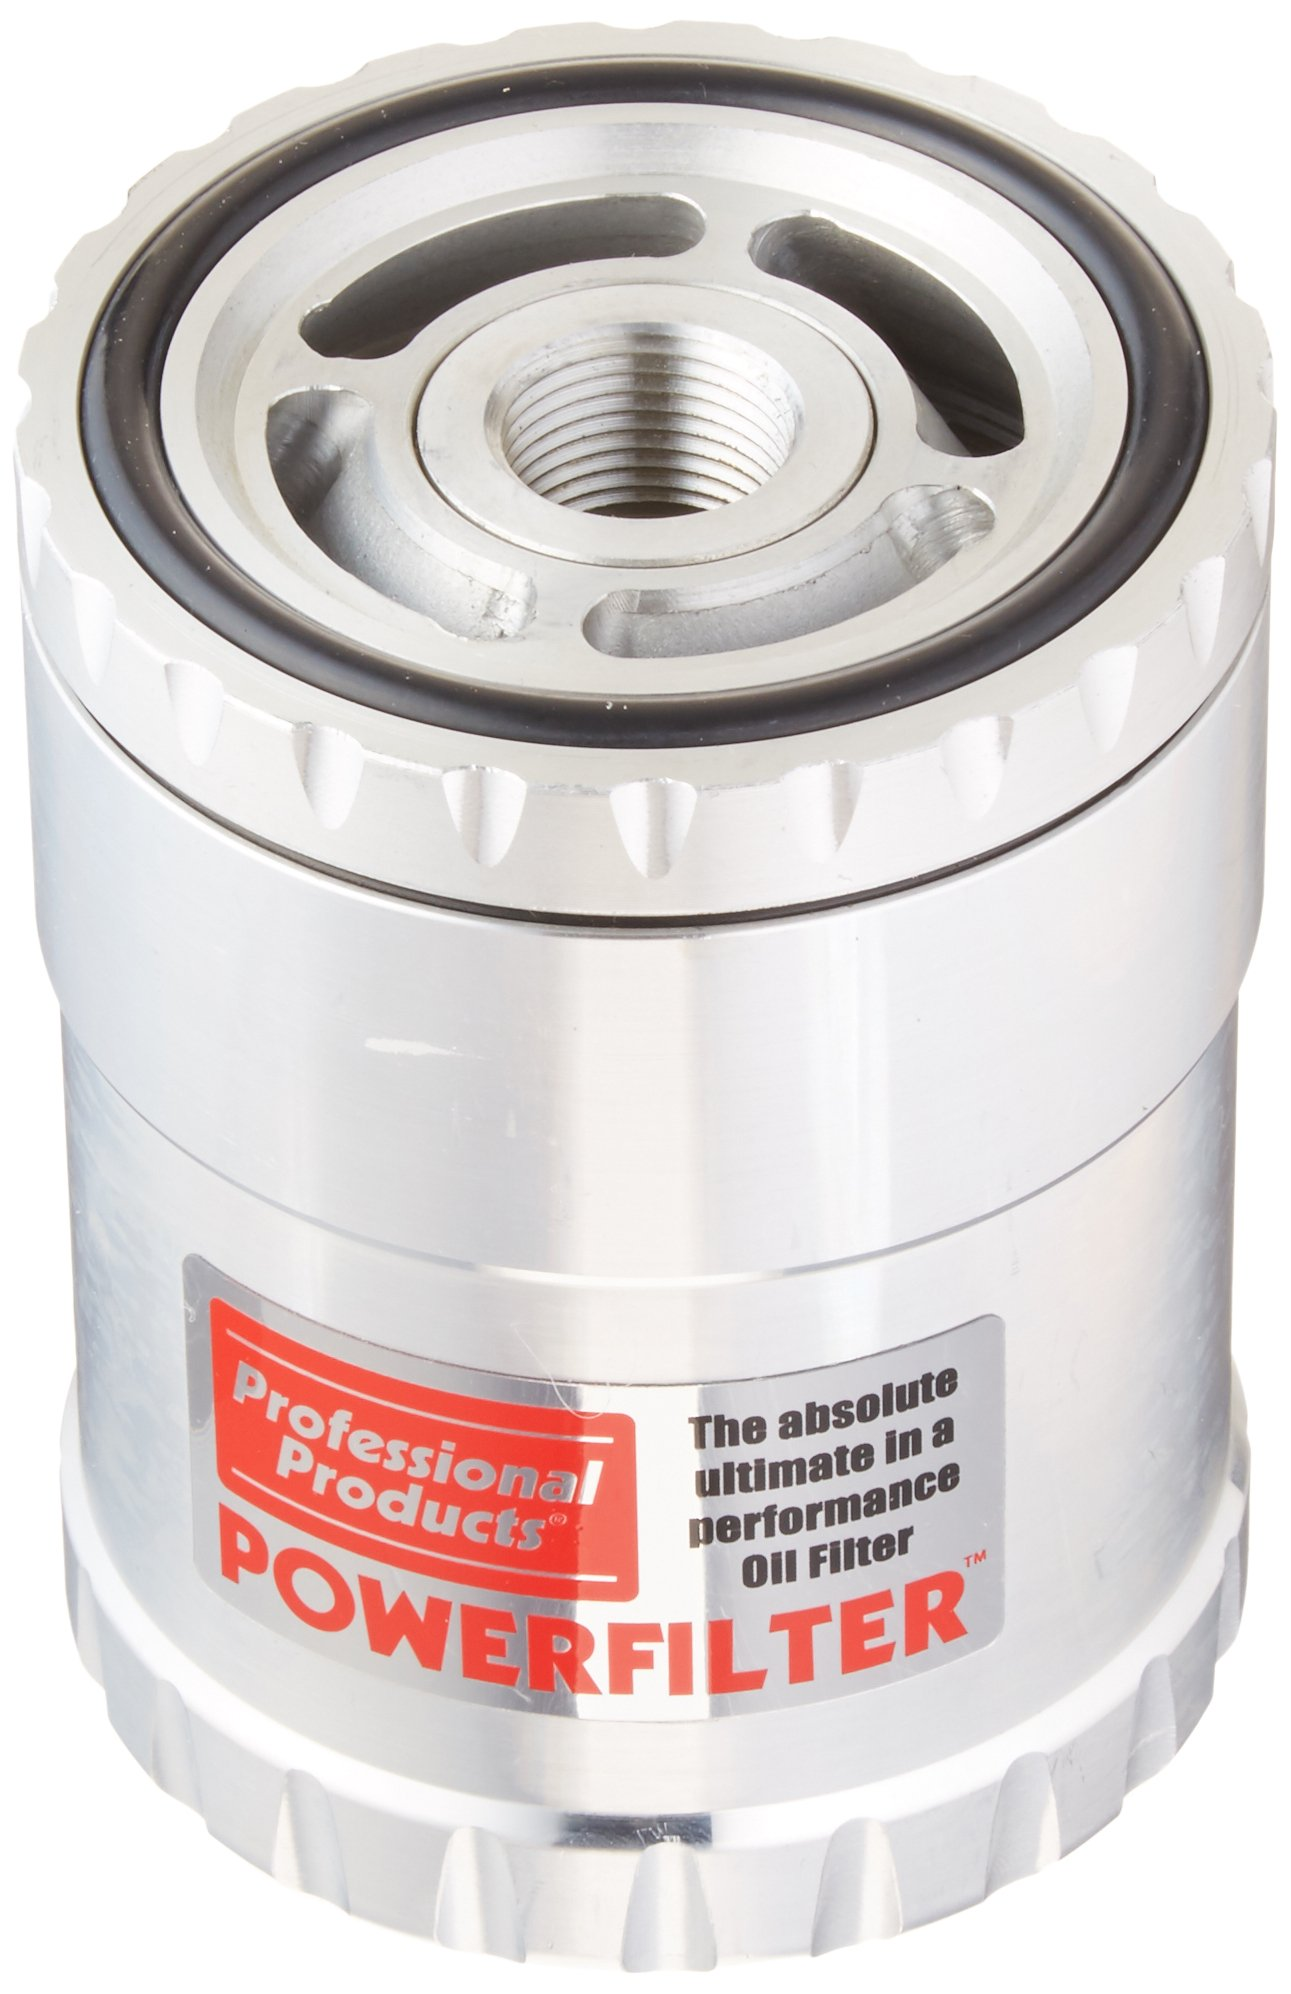 Professional Products 10875 13/16-16 Thread Medium Housing Oil Filter